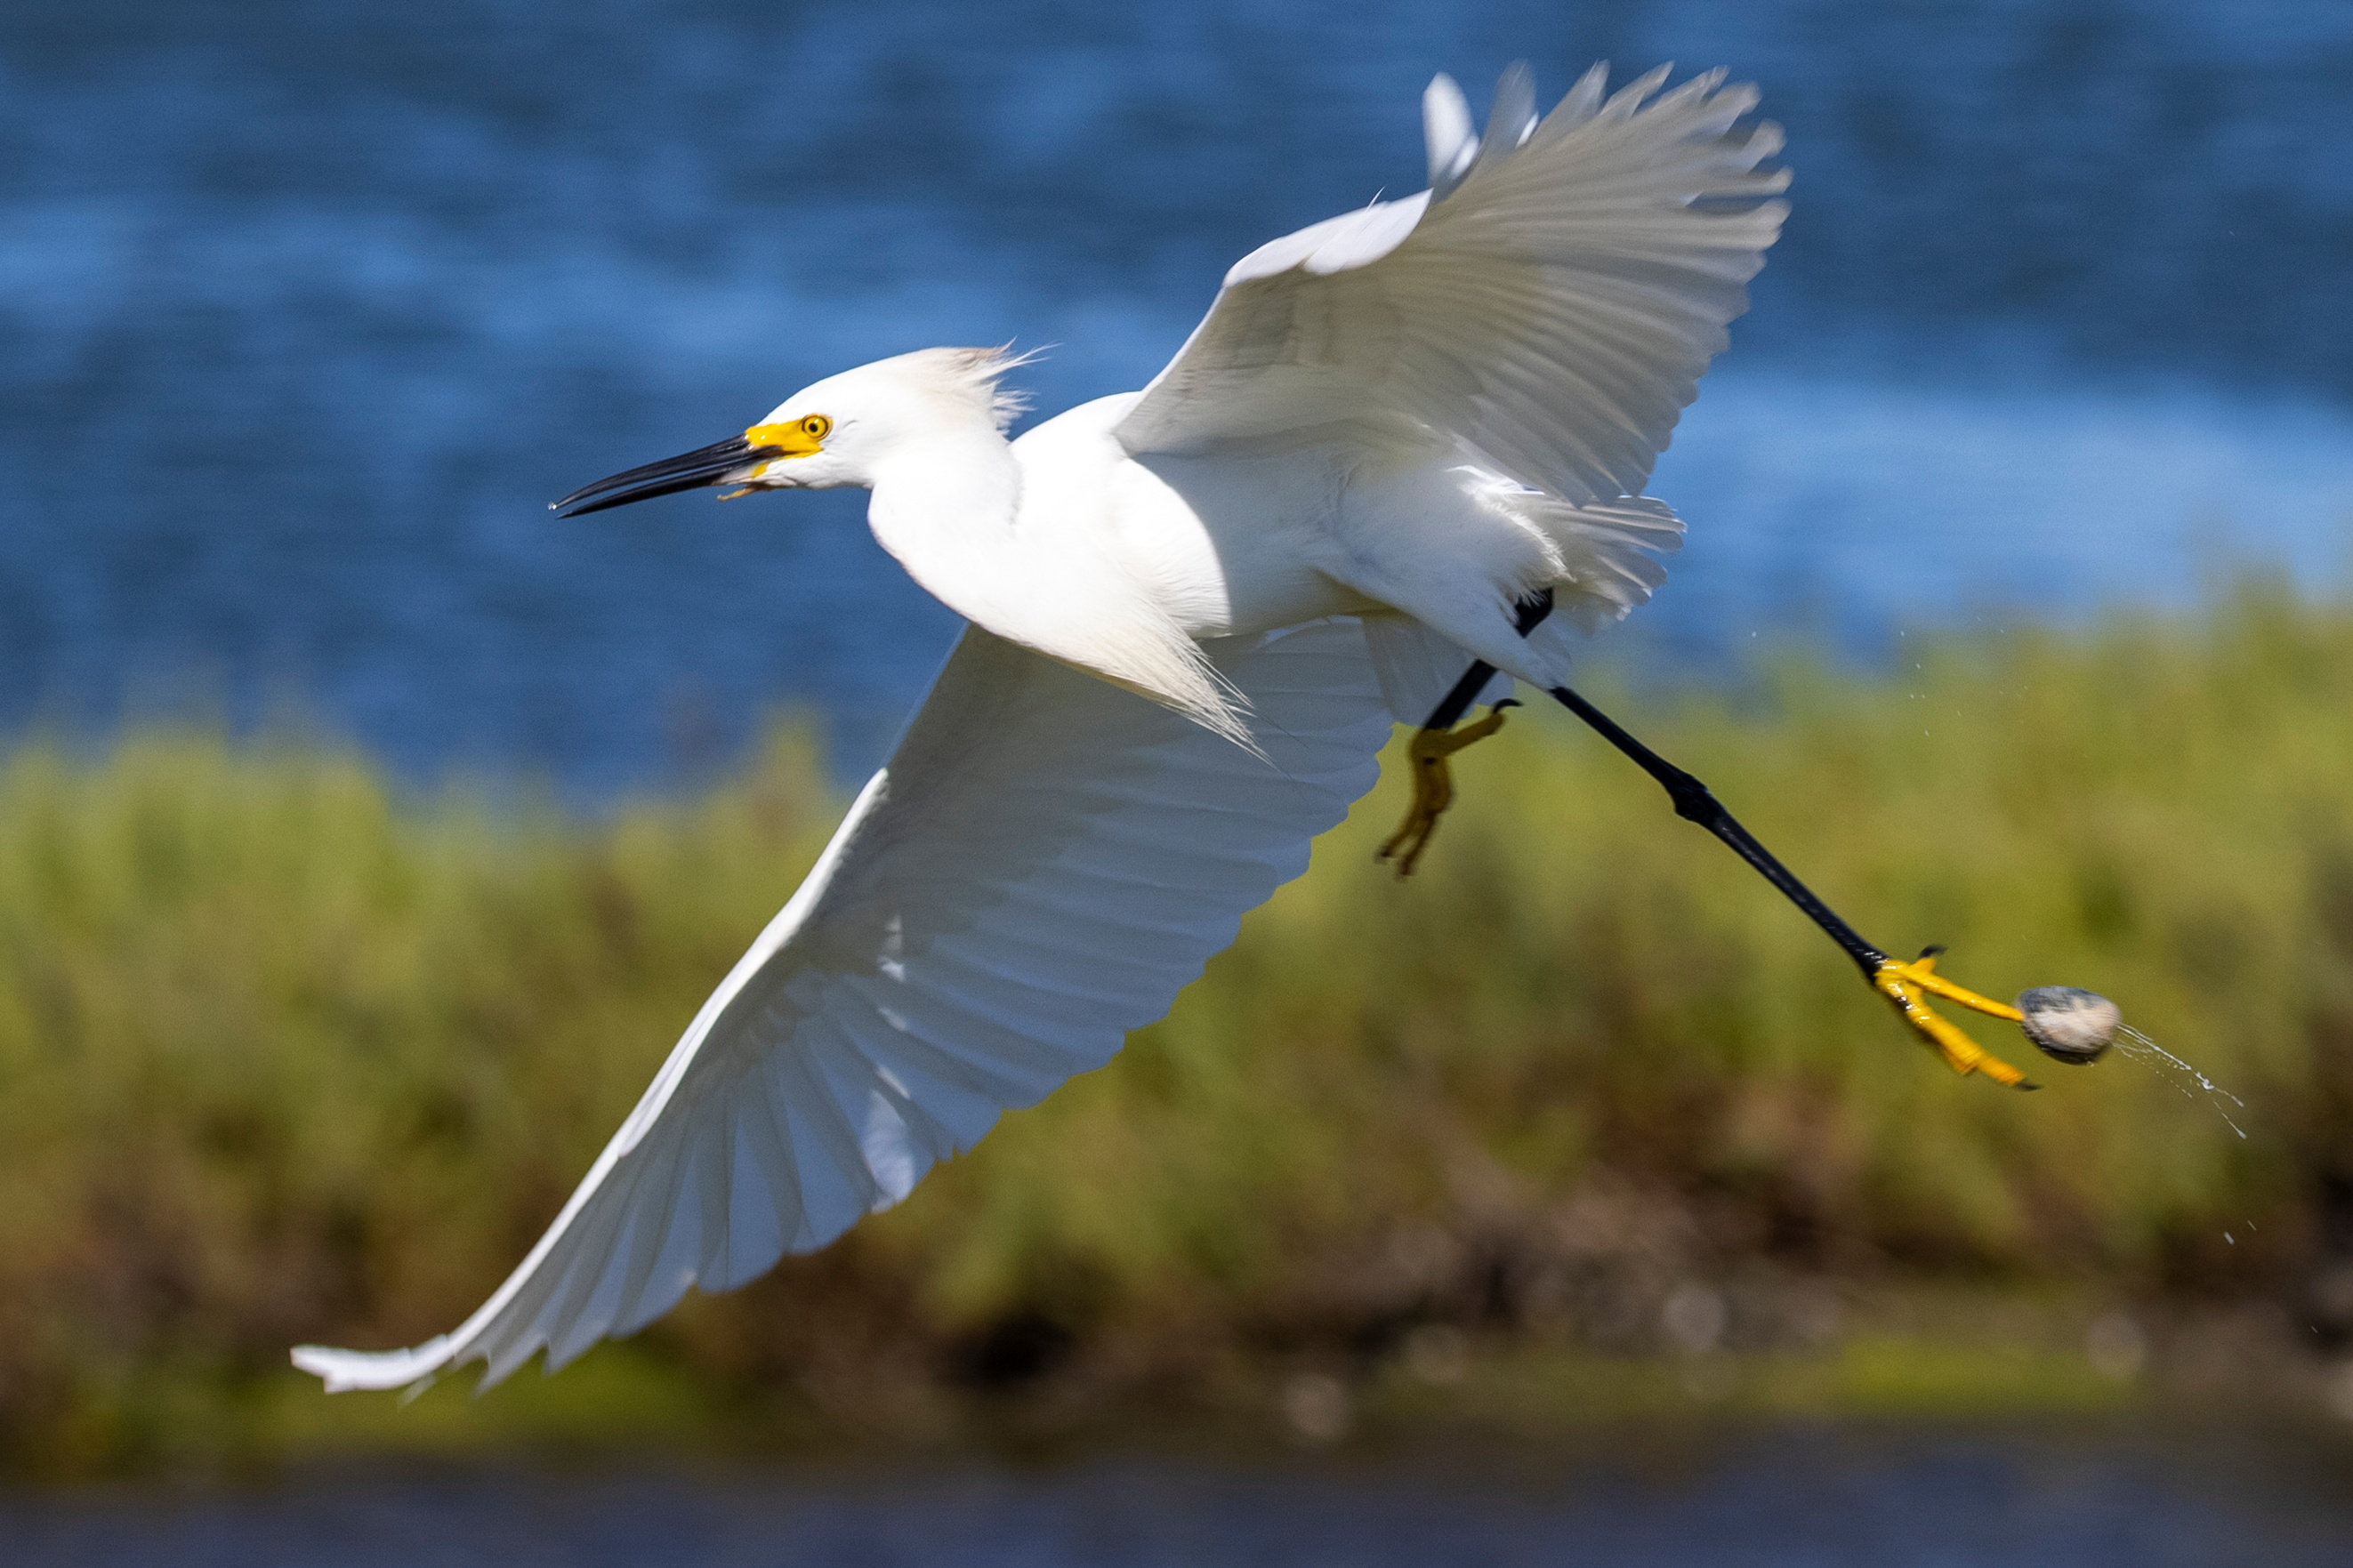 A Snowy Egret takes flight after stepping on a clam while hunting for fish at the Bolsa Chica wetlands in Huntington Beach, California, U.S., June 24, 2021. REUTERS/Mike Blake